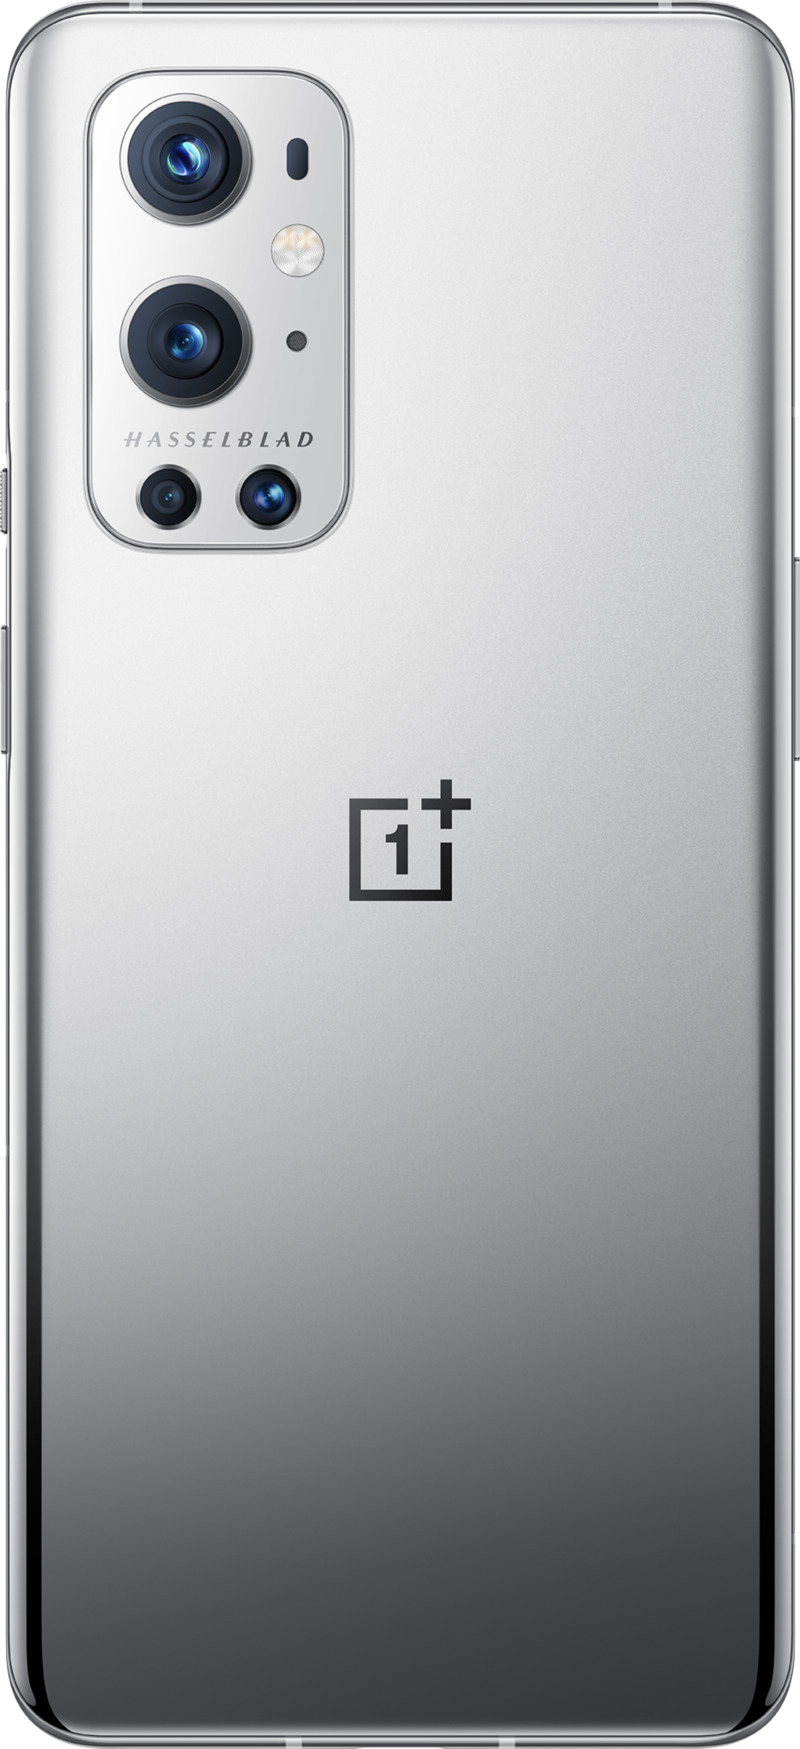 oneplus-9-pro-render-official-morning-mist-3.png